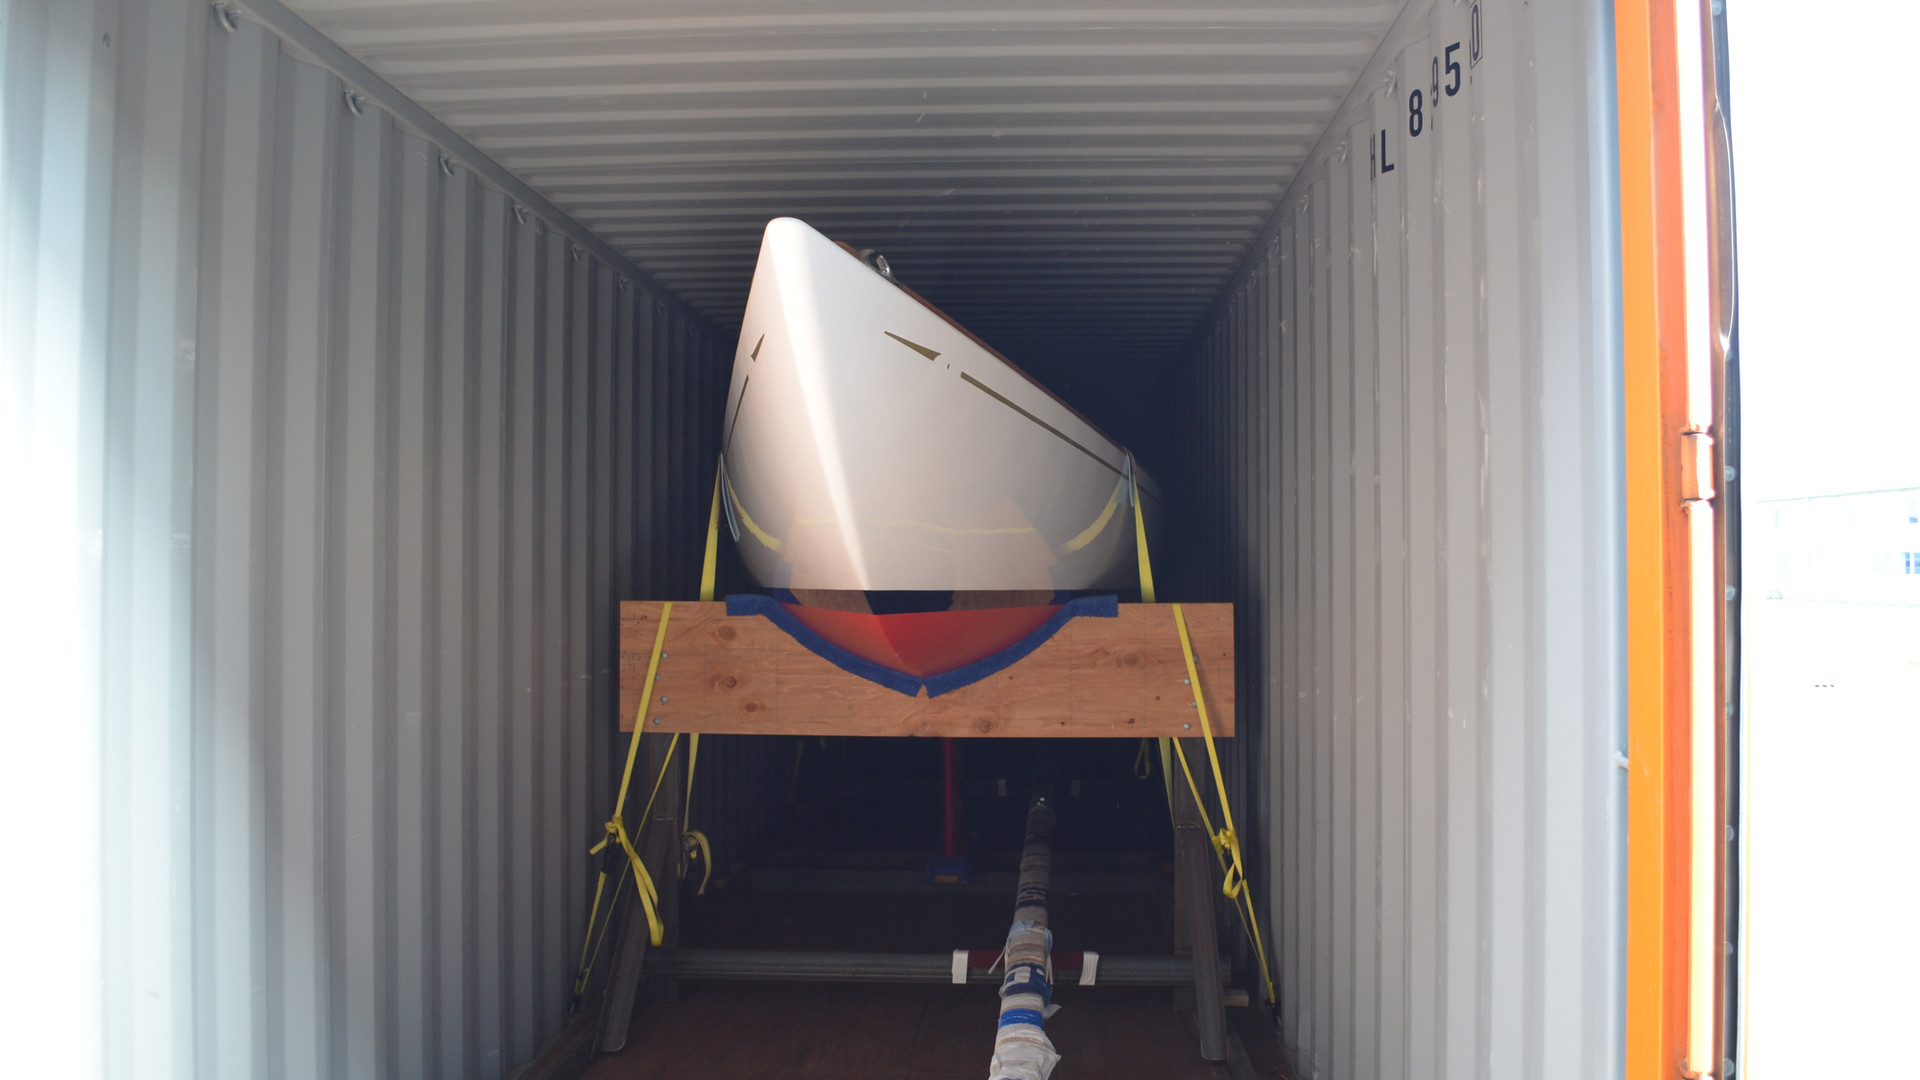 Hood 32 on trailer fits perfectly in a container en route to the Netherlands.